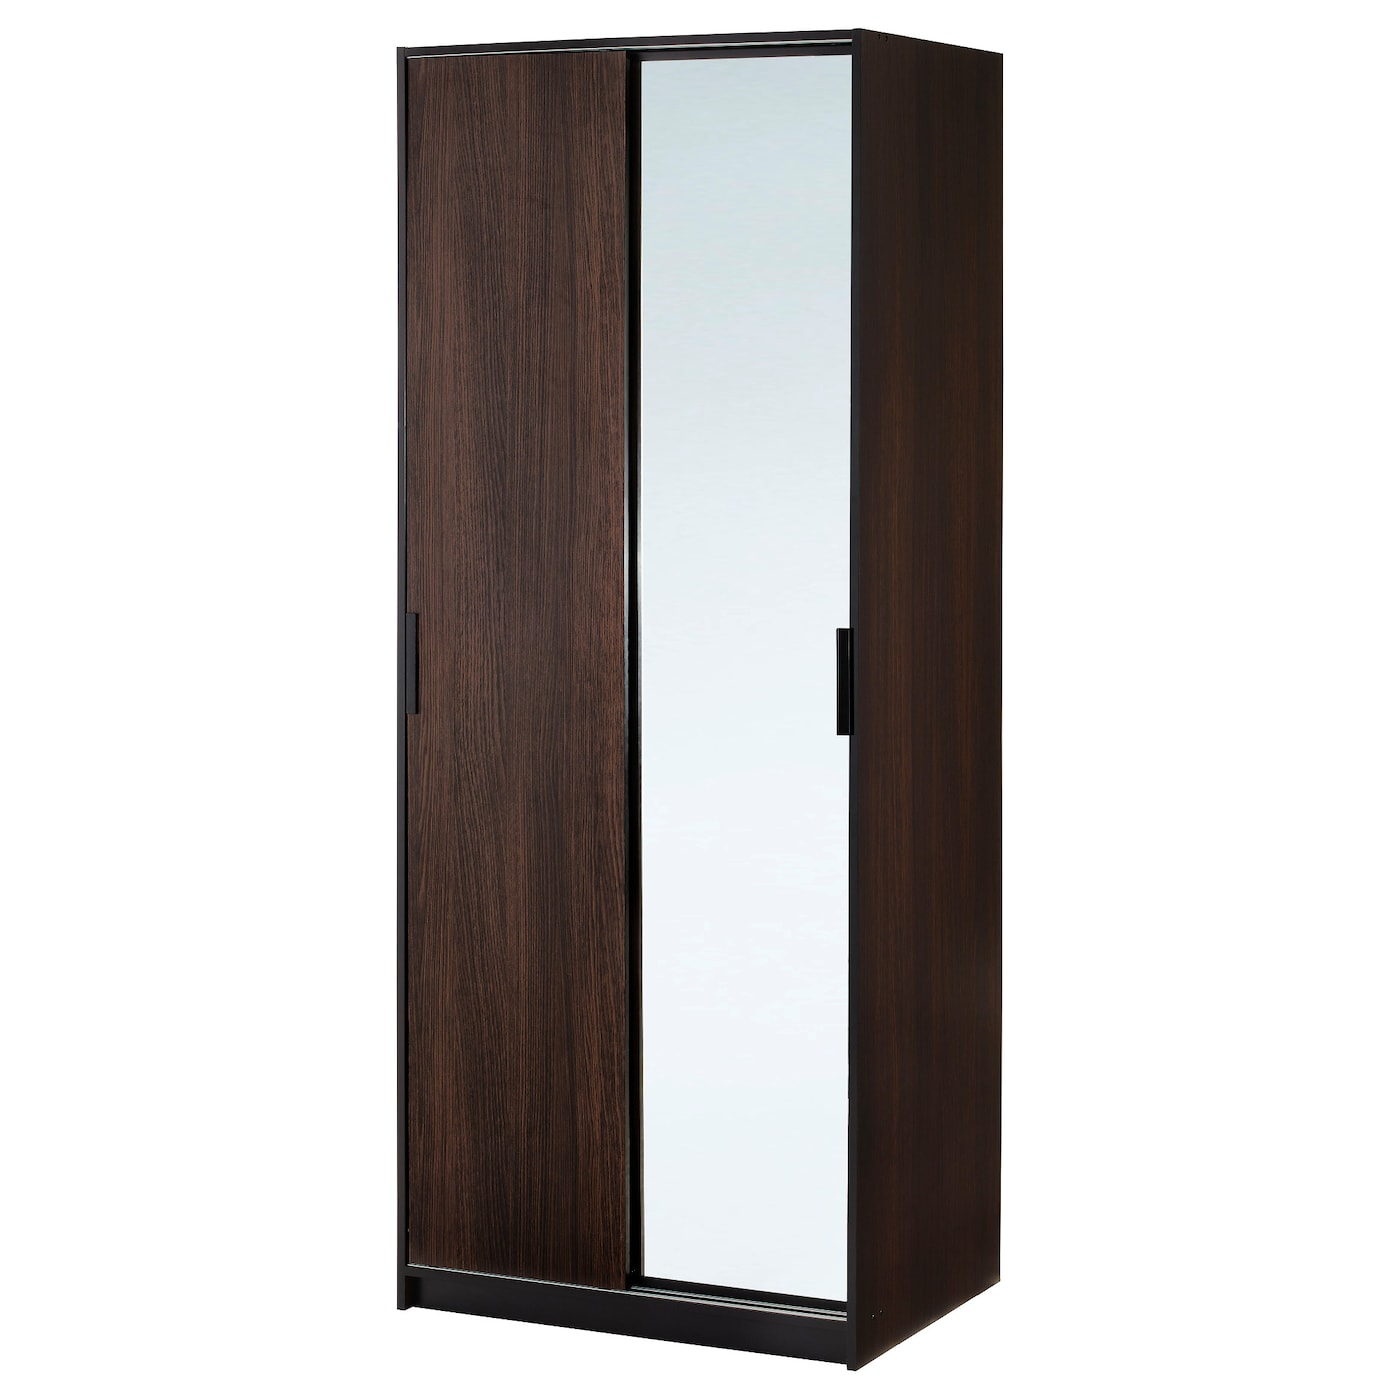 Trysil Wardrobe W Sliding Doors 4 Drawers White 118 X 61 X